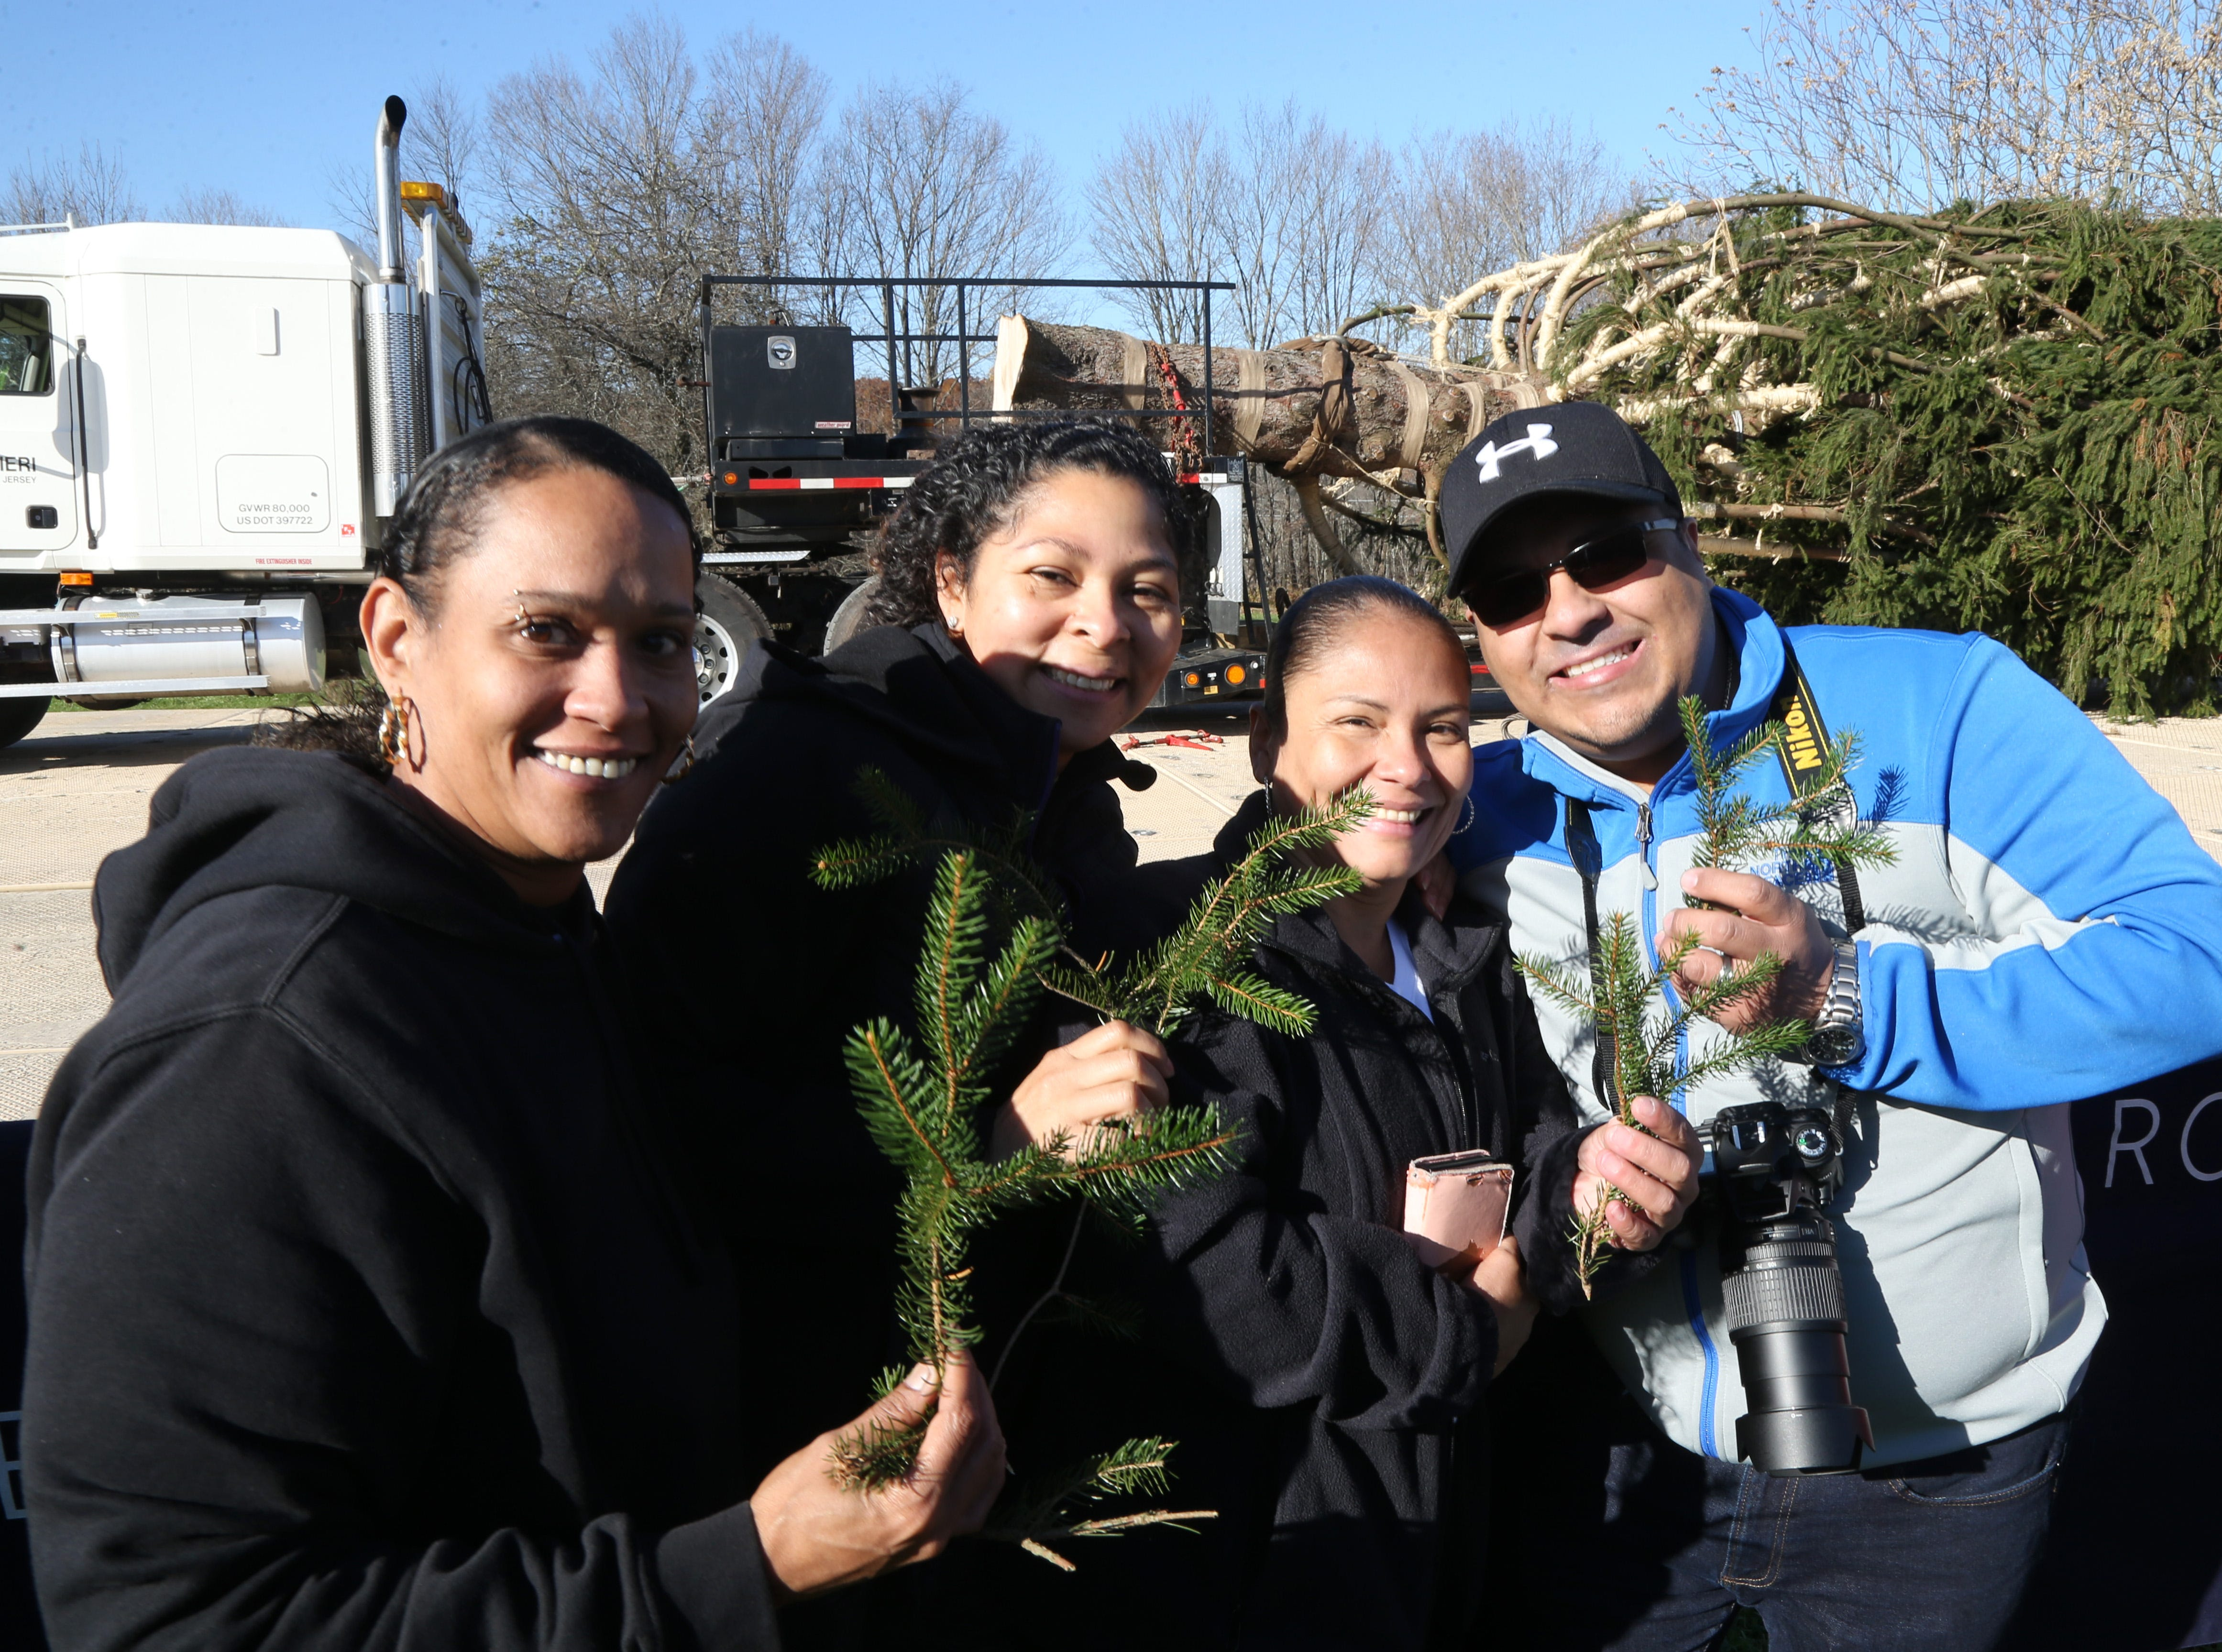 From left, Lee Pabon, Mariluz Garcia, Ledis Ortiz and Marte Garcia of Plattekill with sprigs from the Norway Spruce tree ithat was harvested to be the 2018 Rockefeller Center Christmas Tree in Wallkill on November 8, 2018.